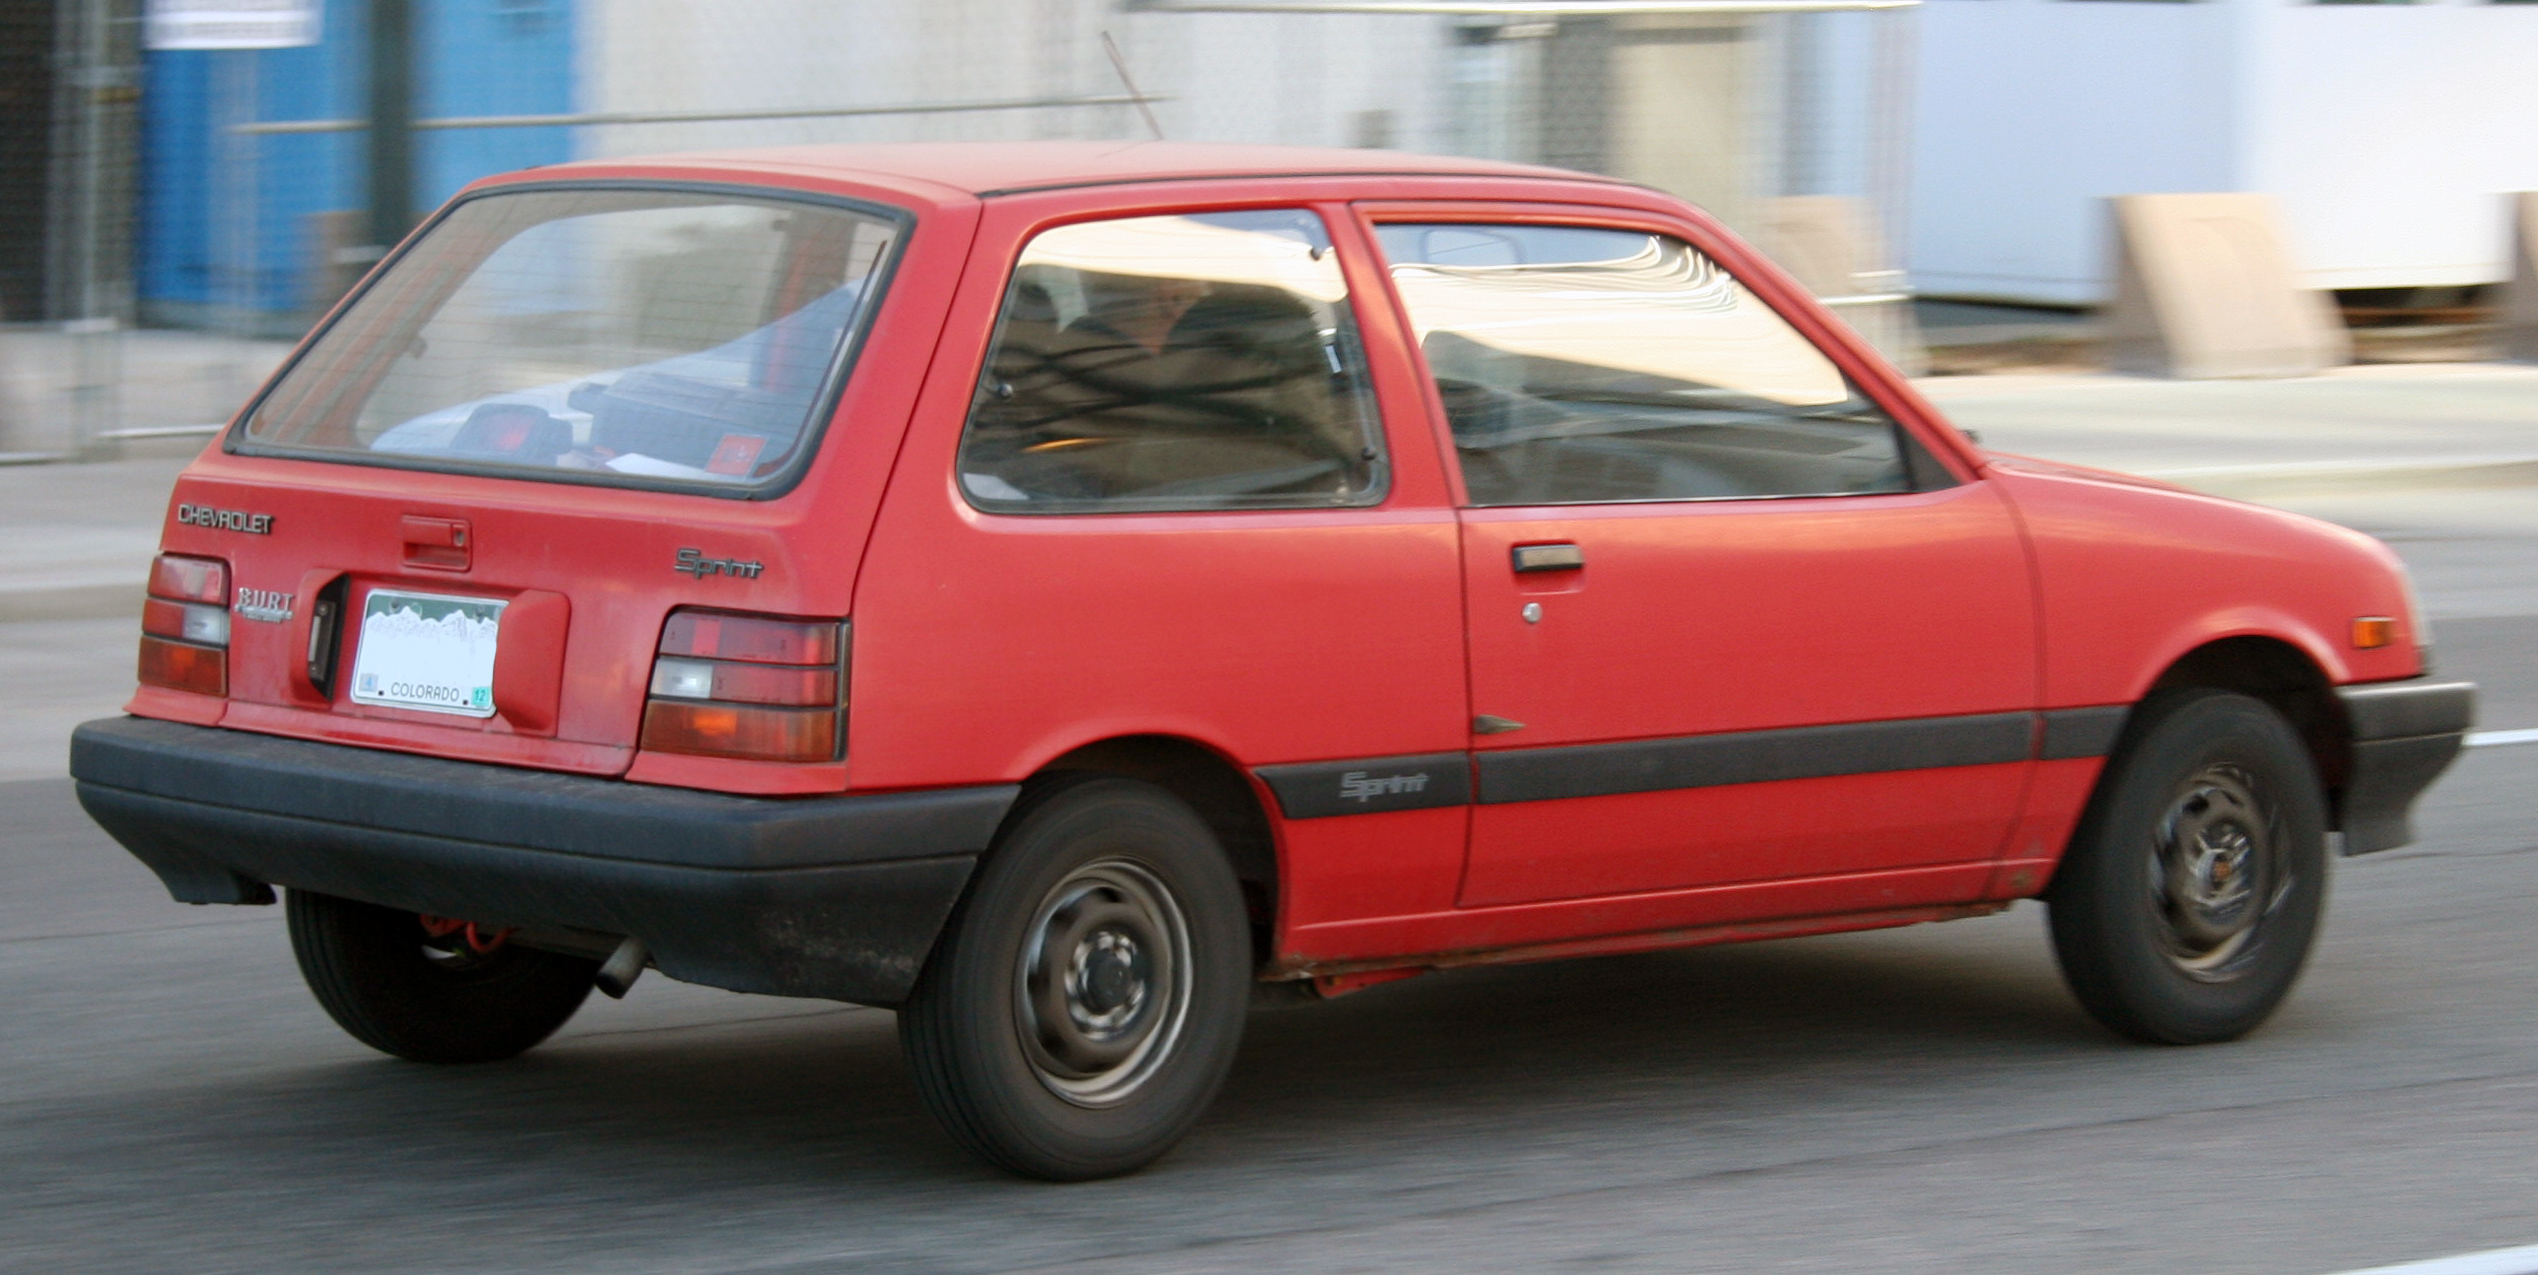 CHEVROLET SPRINT red